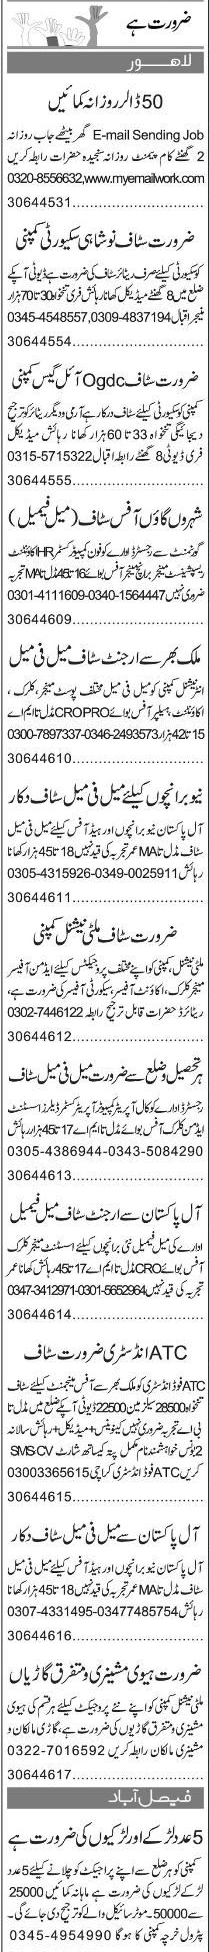 Receptionists, Data Entry Operators Job Opportunity